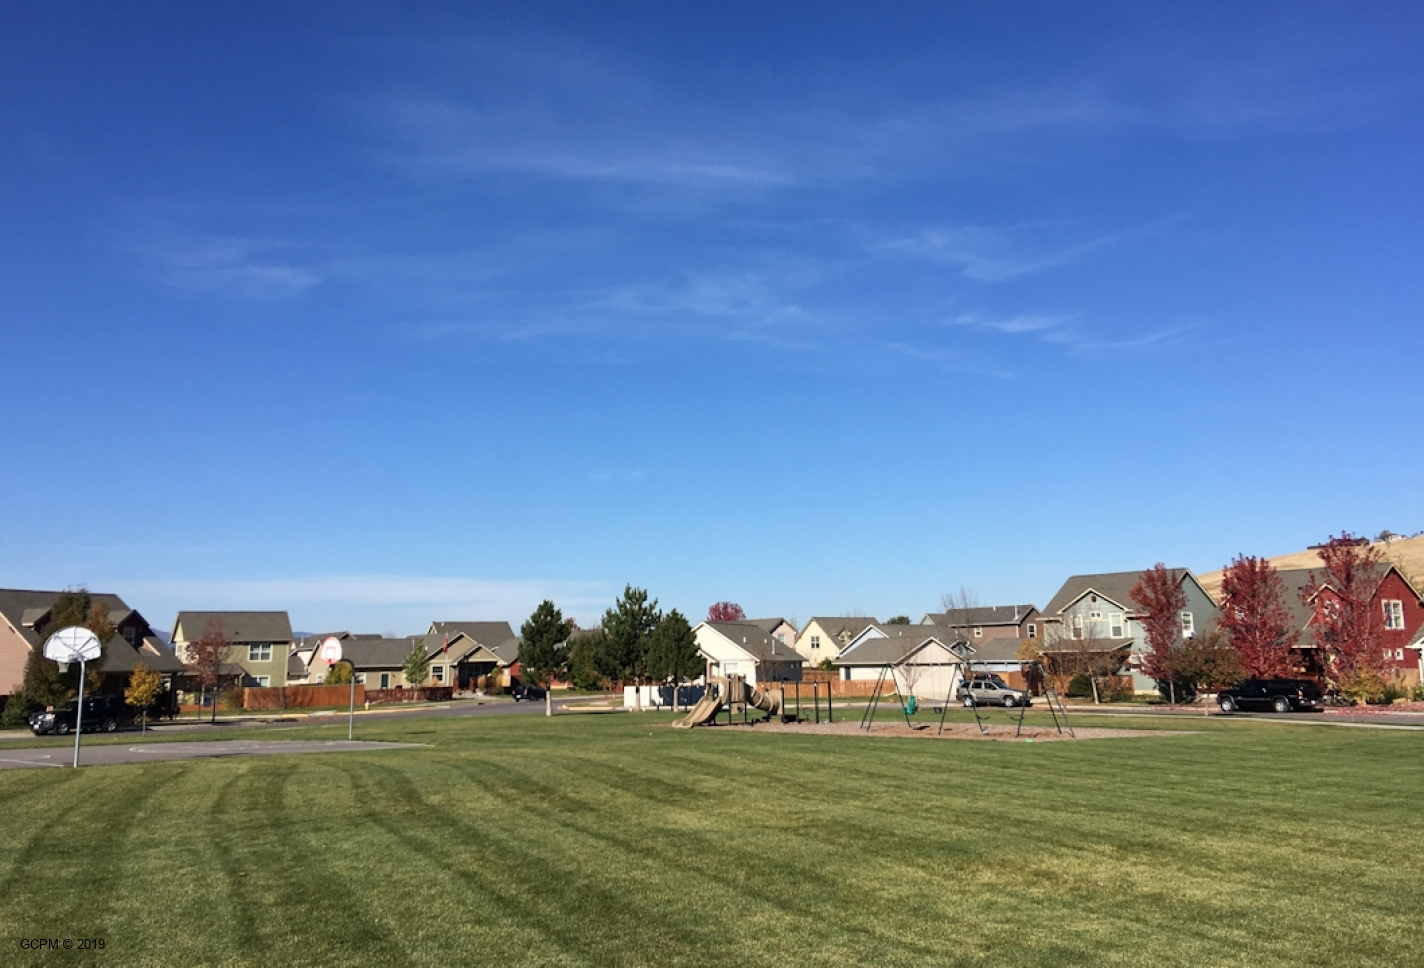 Close to a park with playground, basketball hoops and large field.